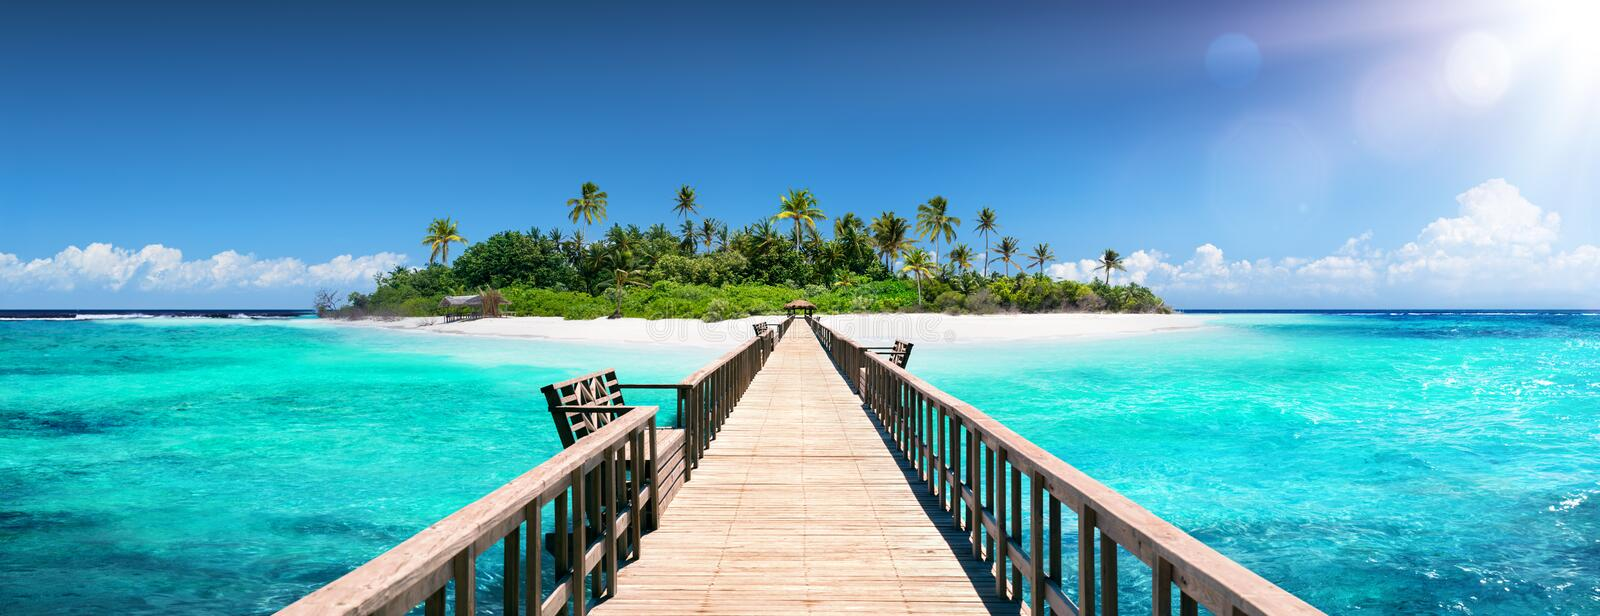 Pier For Paradise Island - destino tropical imagem de stock